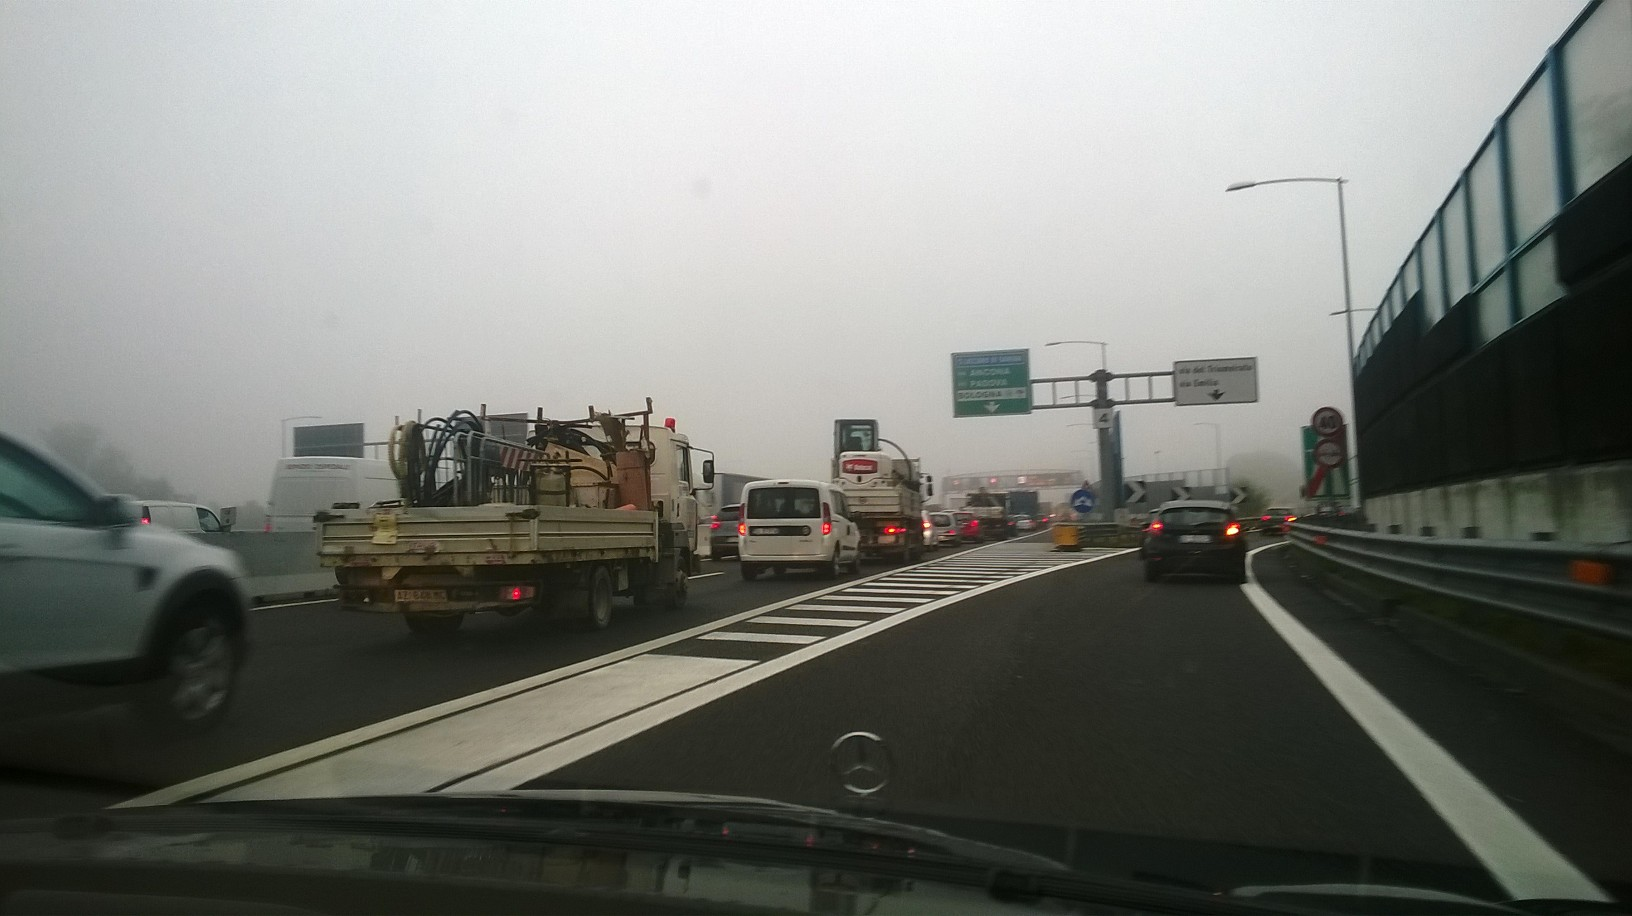 bologna driving airport A1 oct15